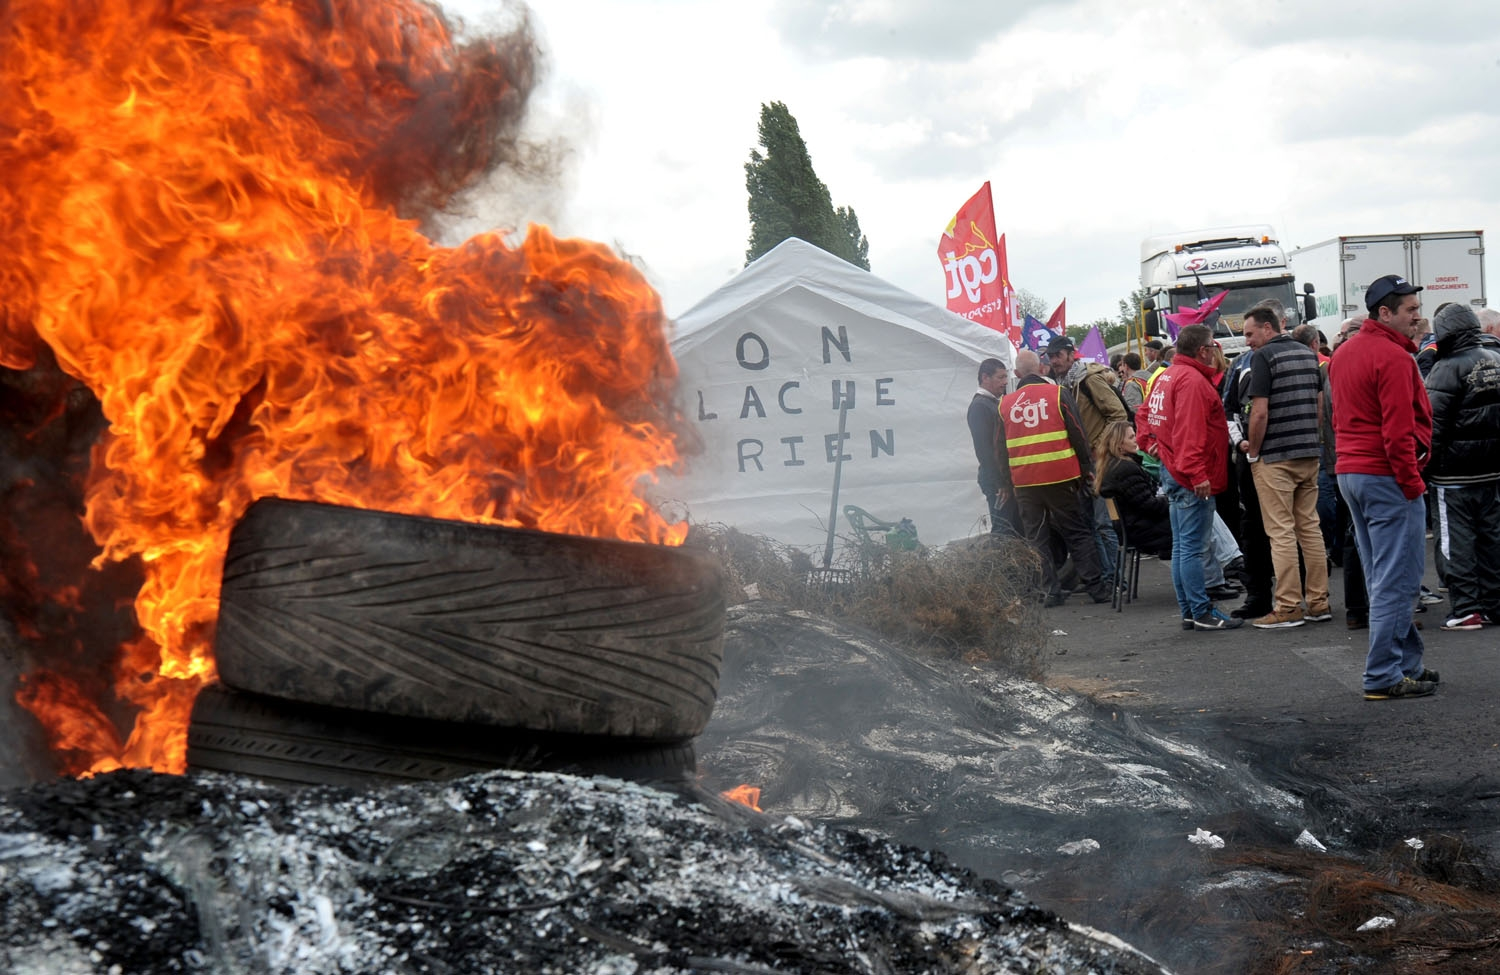 French union members burn tires as they protest against the proposed government labour reforms outside a petrol depot at Douchy-Les-Mines, northern France, on May 24, 2016